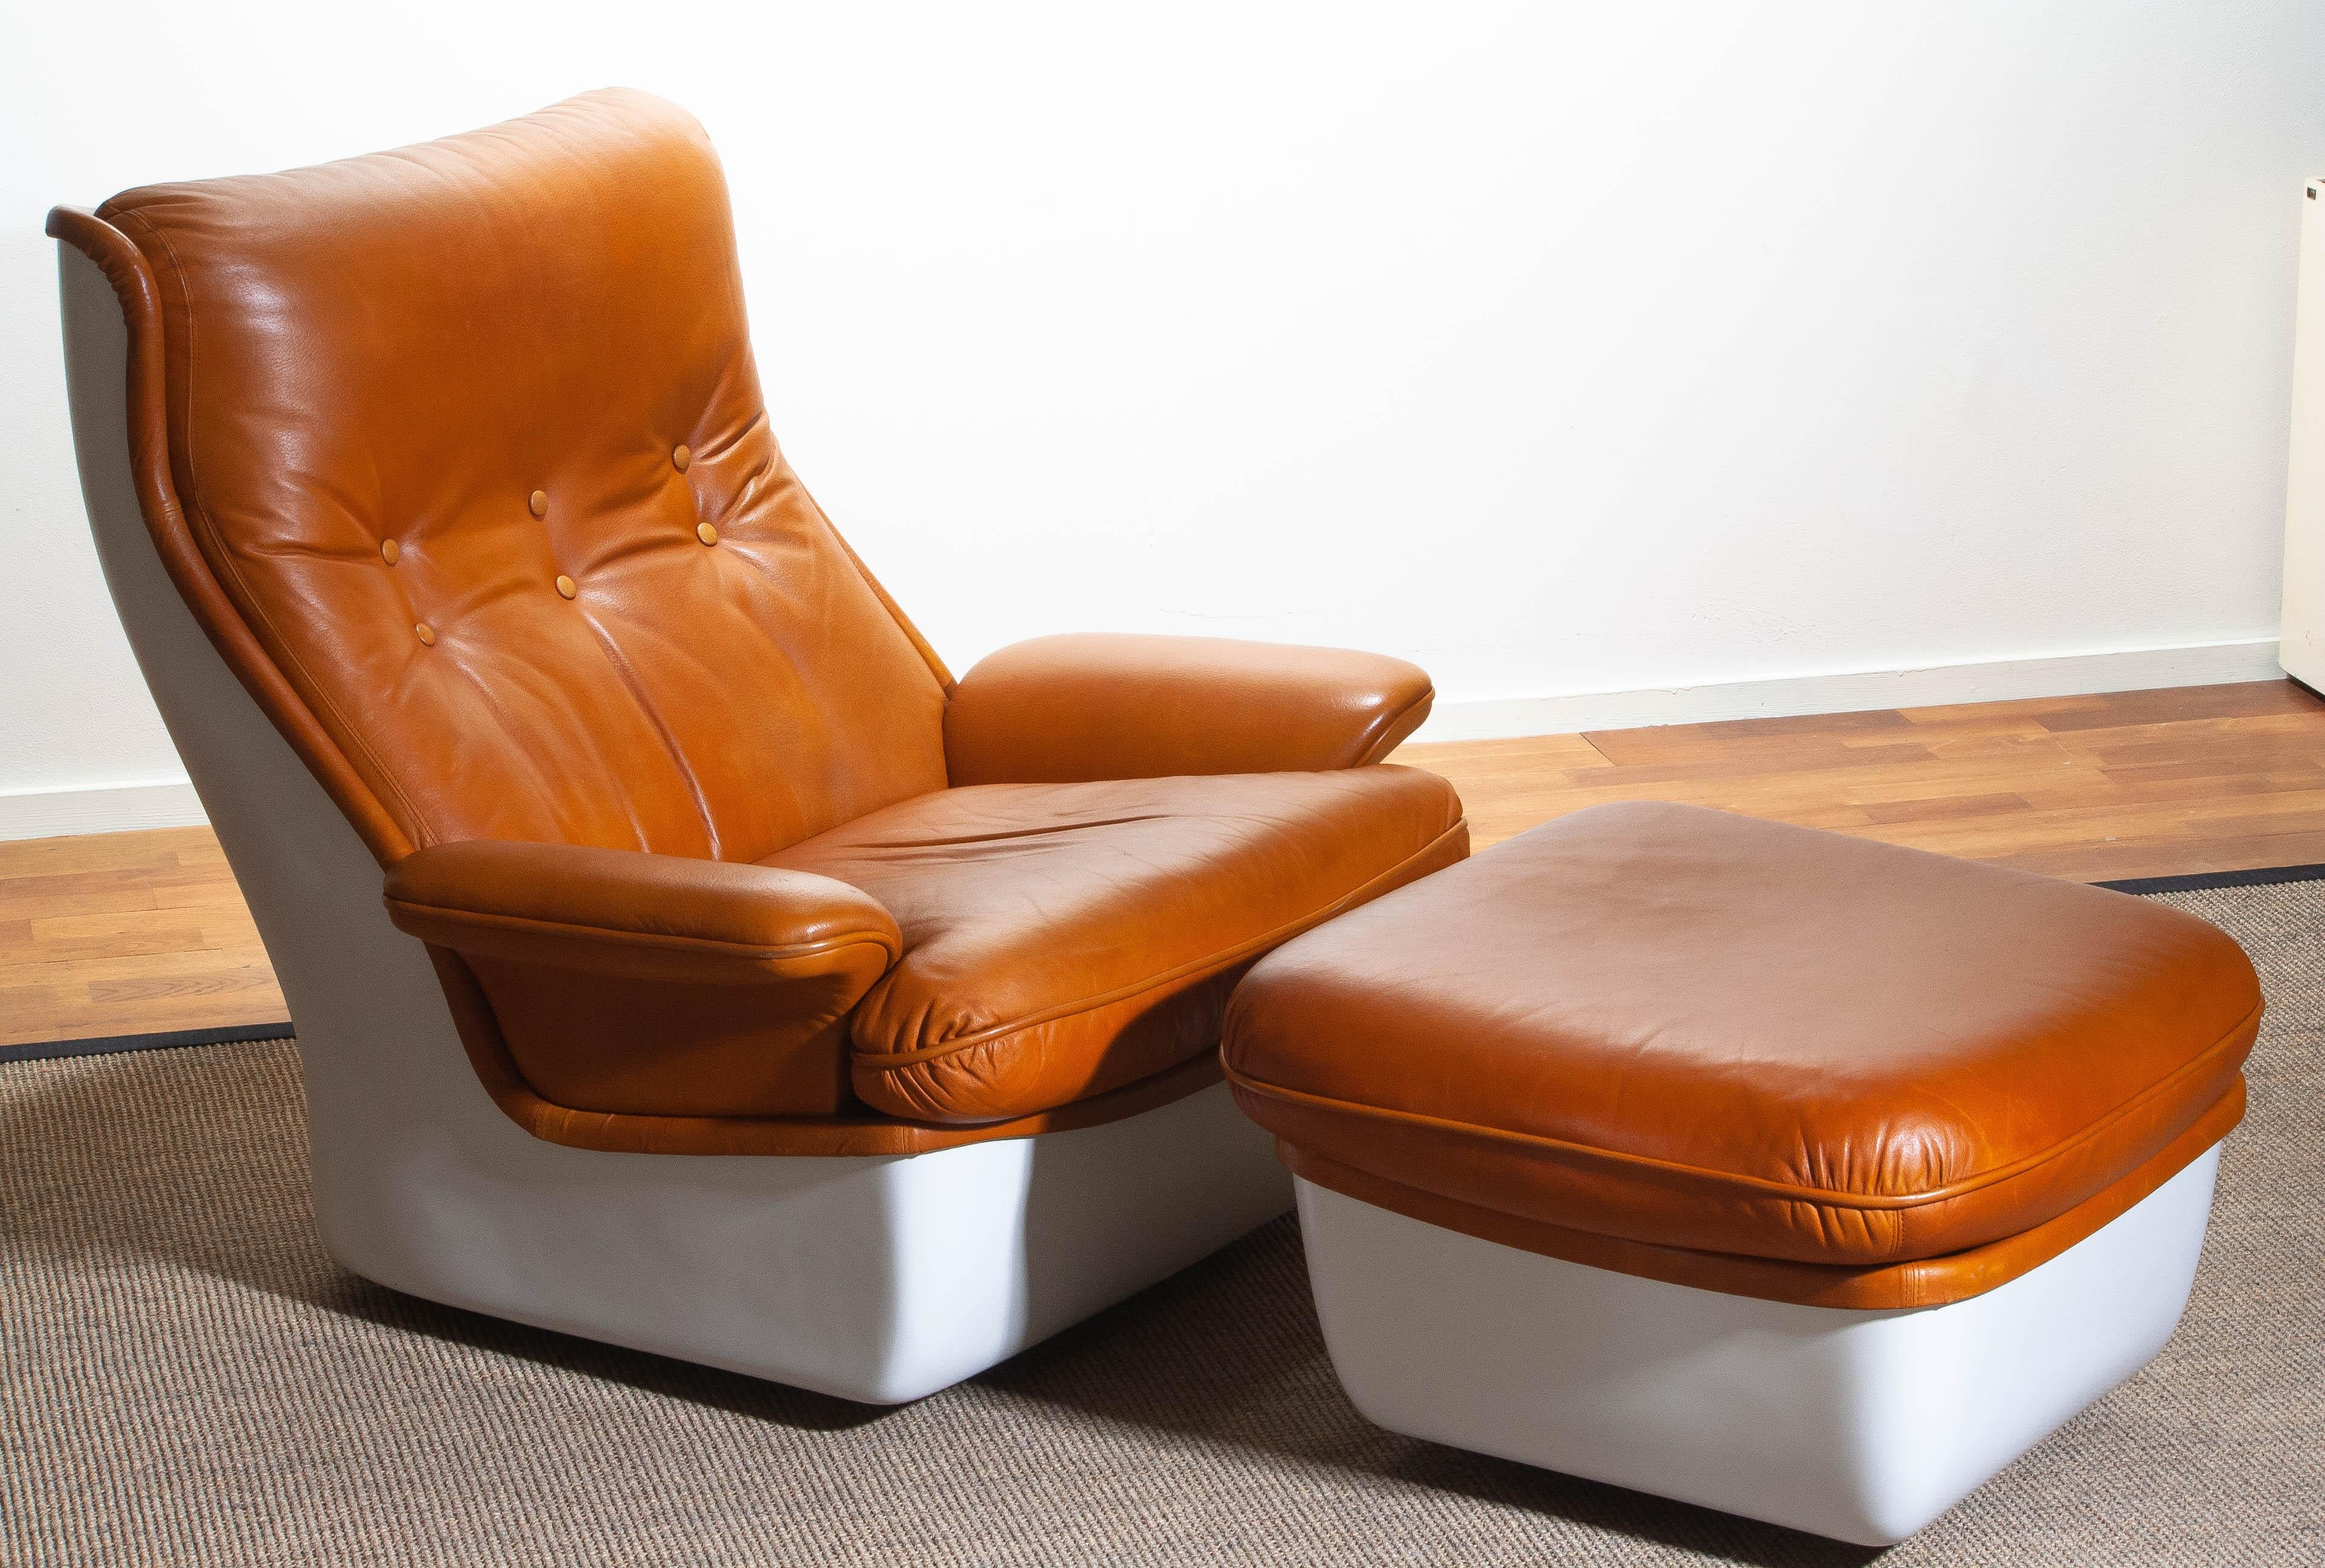 Wondrous 1970S Marc Held Airborne Lounge Easy Chair And Ottoman In Cognac Leather Creativecarmelina Interior Chair Design Creativecarmelinacom